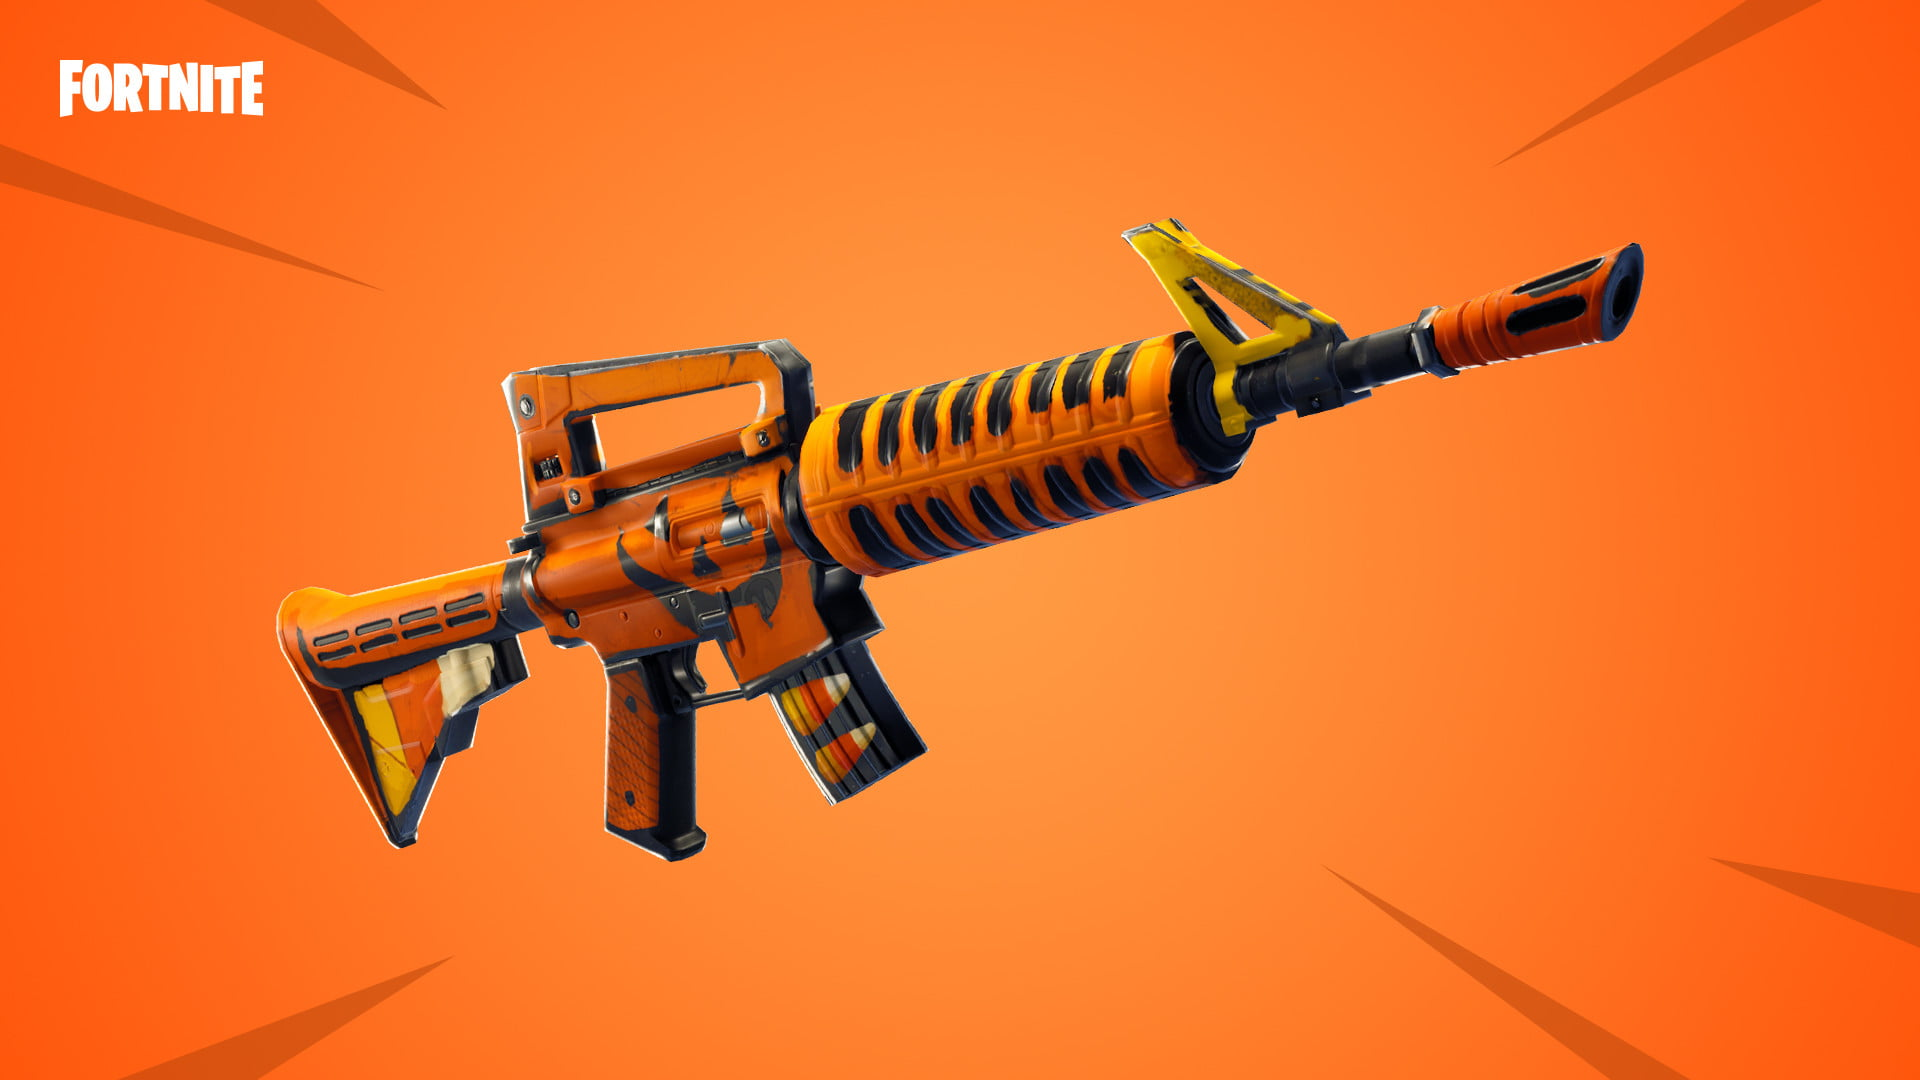 Fortnite Update 6 10 Introduces The Quadcrasher In Game